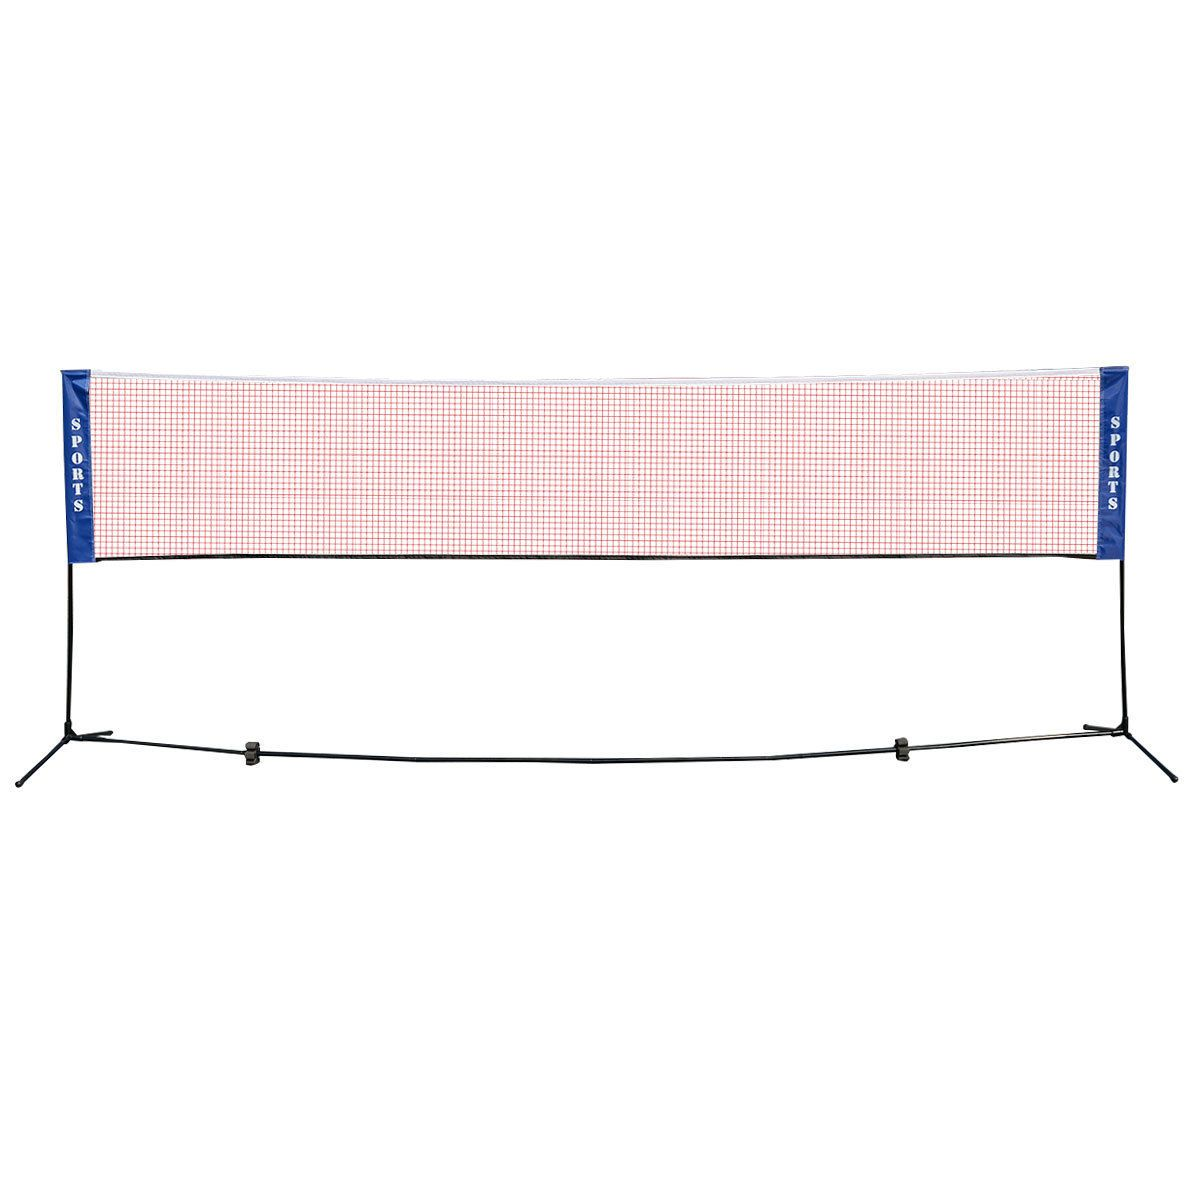 14 X 5 Portable Beach Training Badminton Net With Carrying Bag Badminton Nets Beach Tennis Badminton